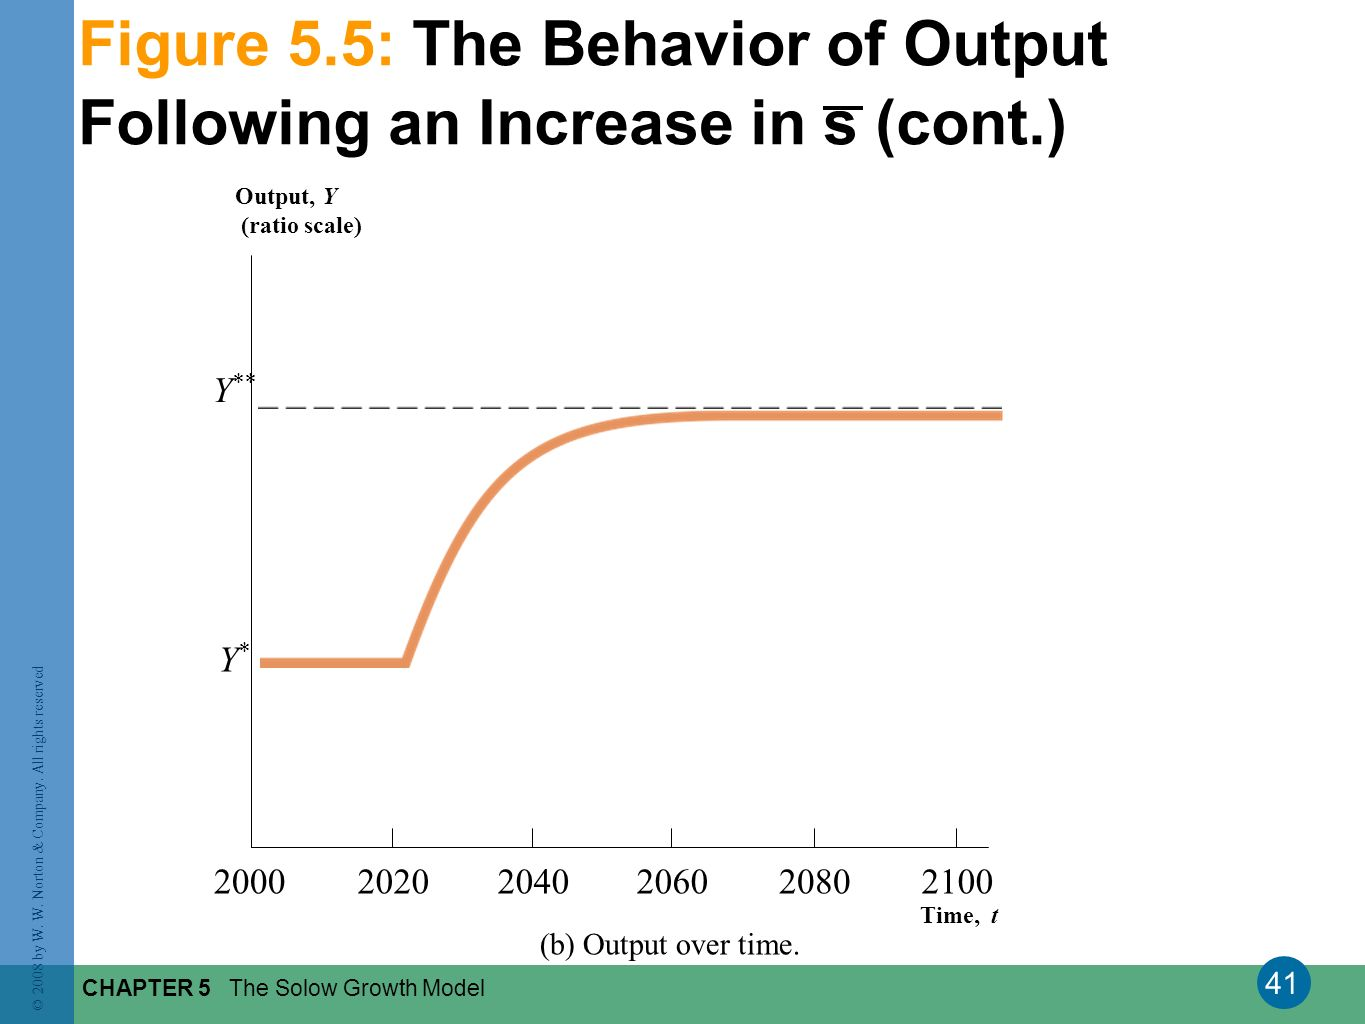 Figure 5.5: The Behavior of Output Following an Increase in s (cont.)